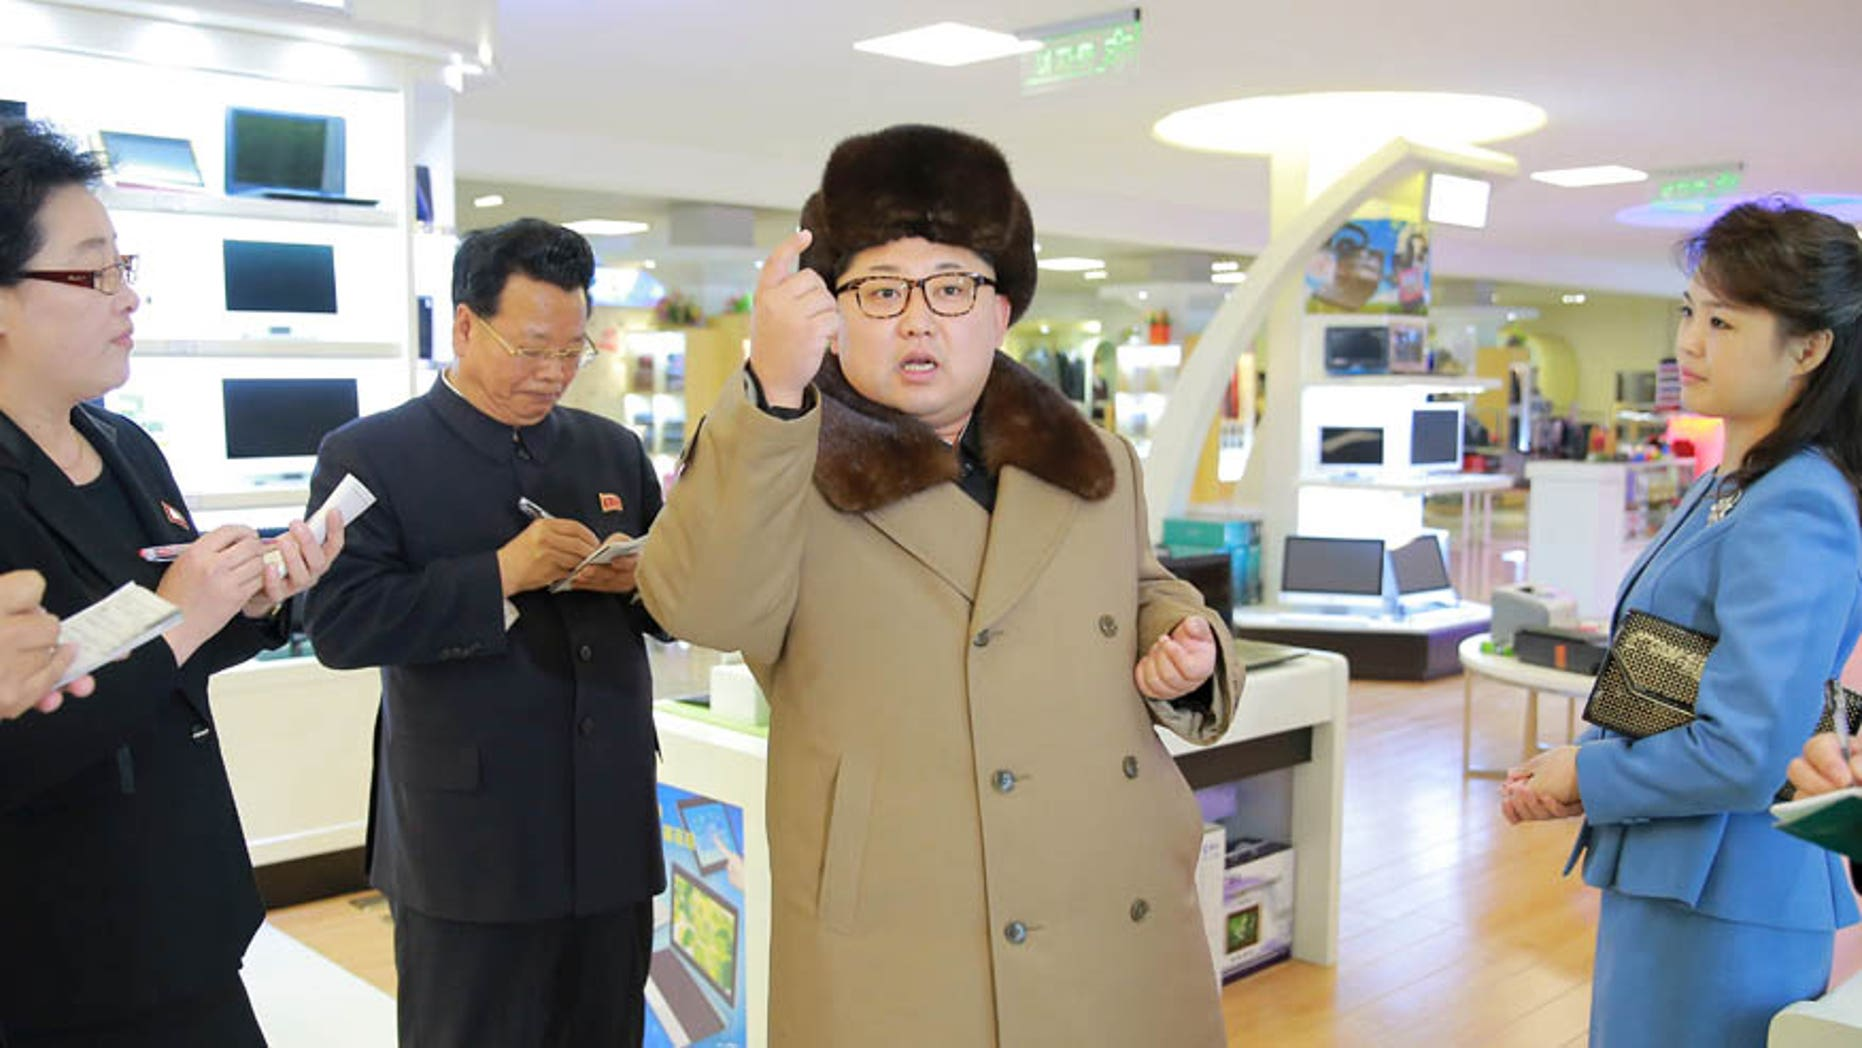 North Korean leader Kim Jong Un, together with his wife Ri Sol Ju (R), gives field guidance at the newly built Mirae Shop and Health Complex in this undated photo released by North Korea's Korean Central News Agency (KCNA) on March 28, 2016